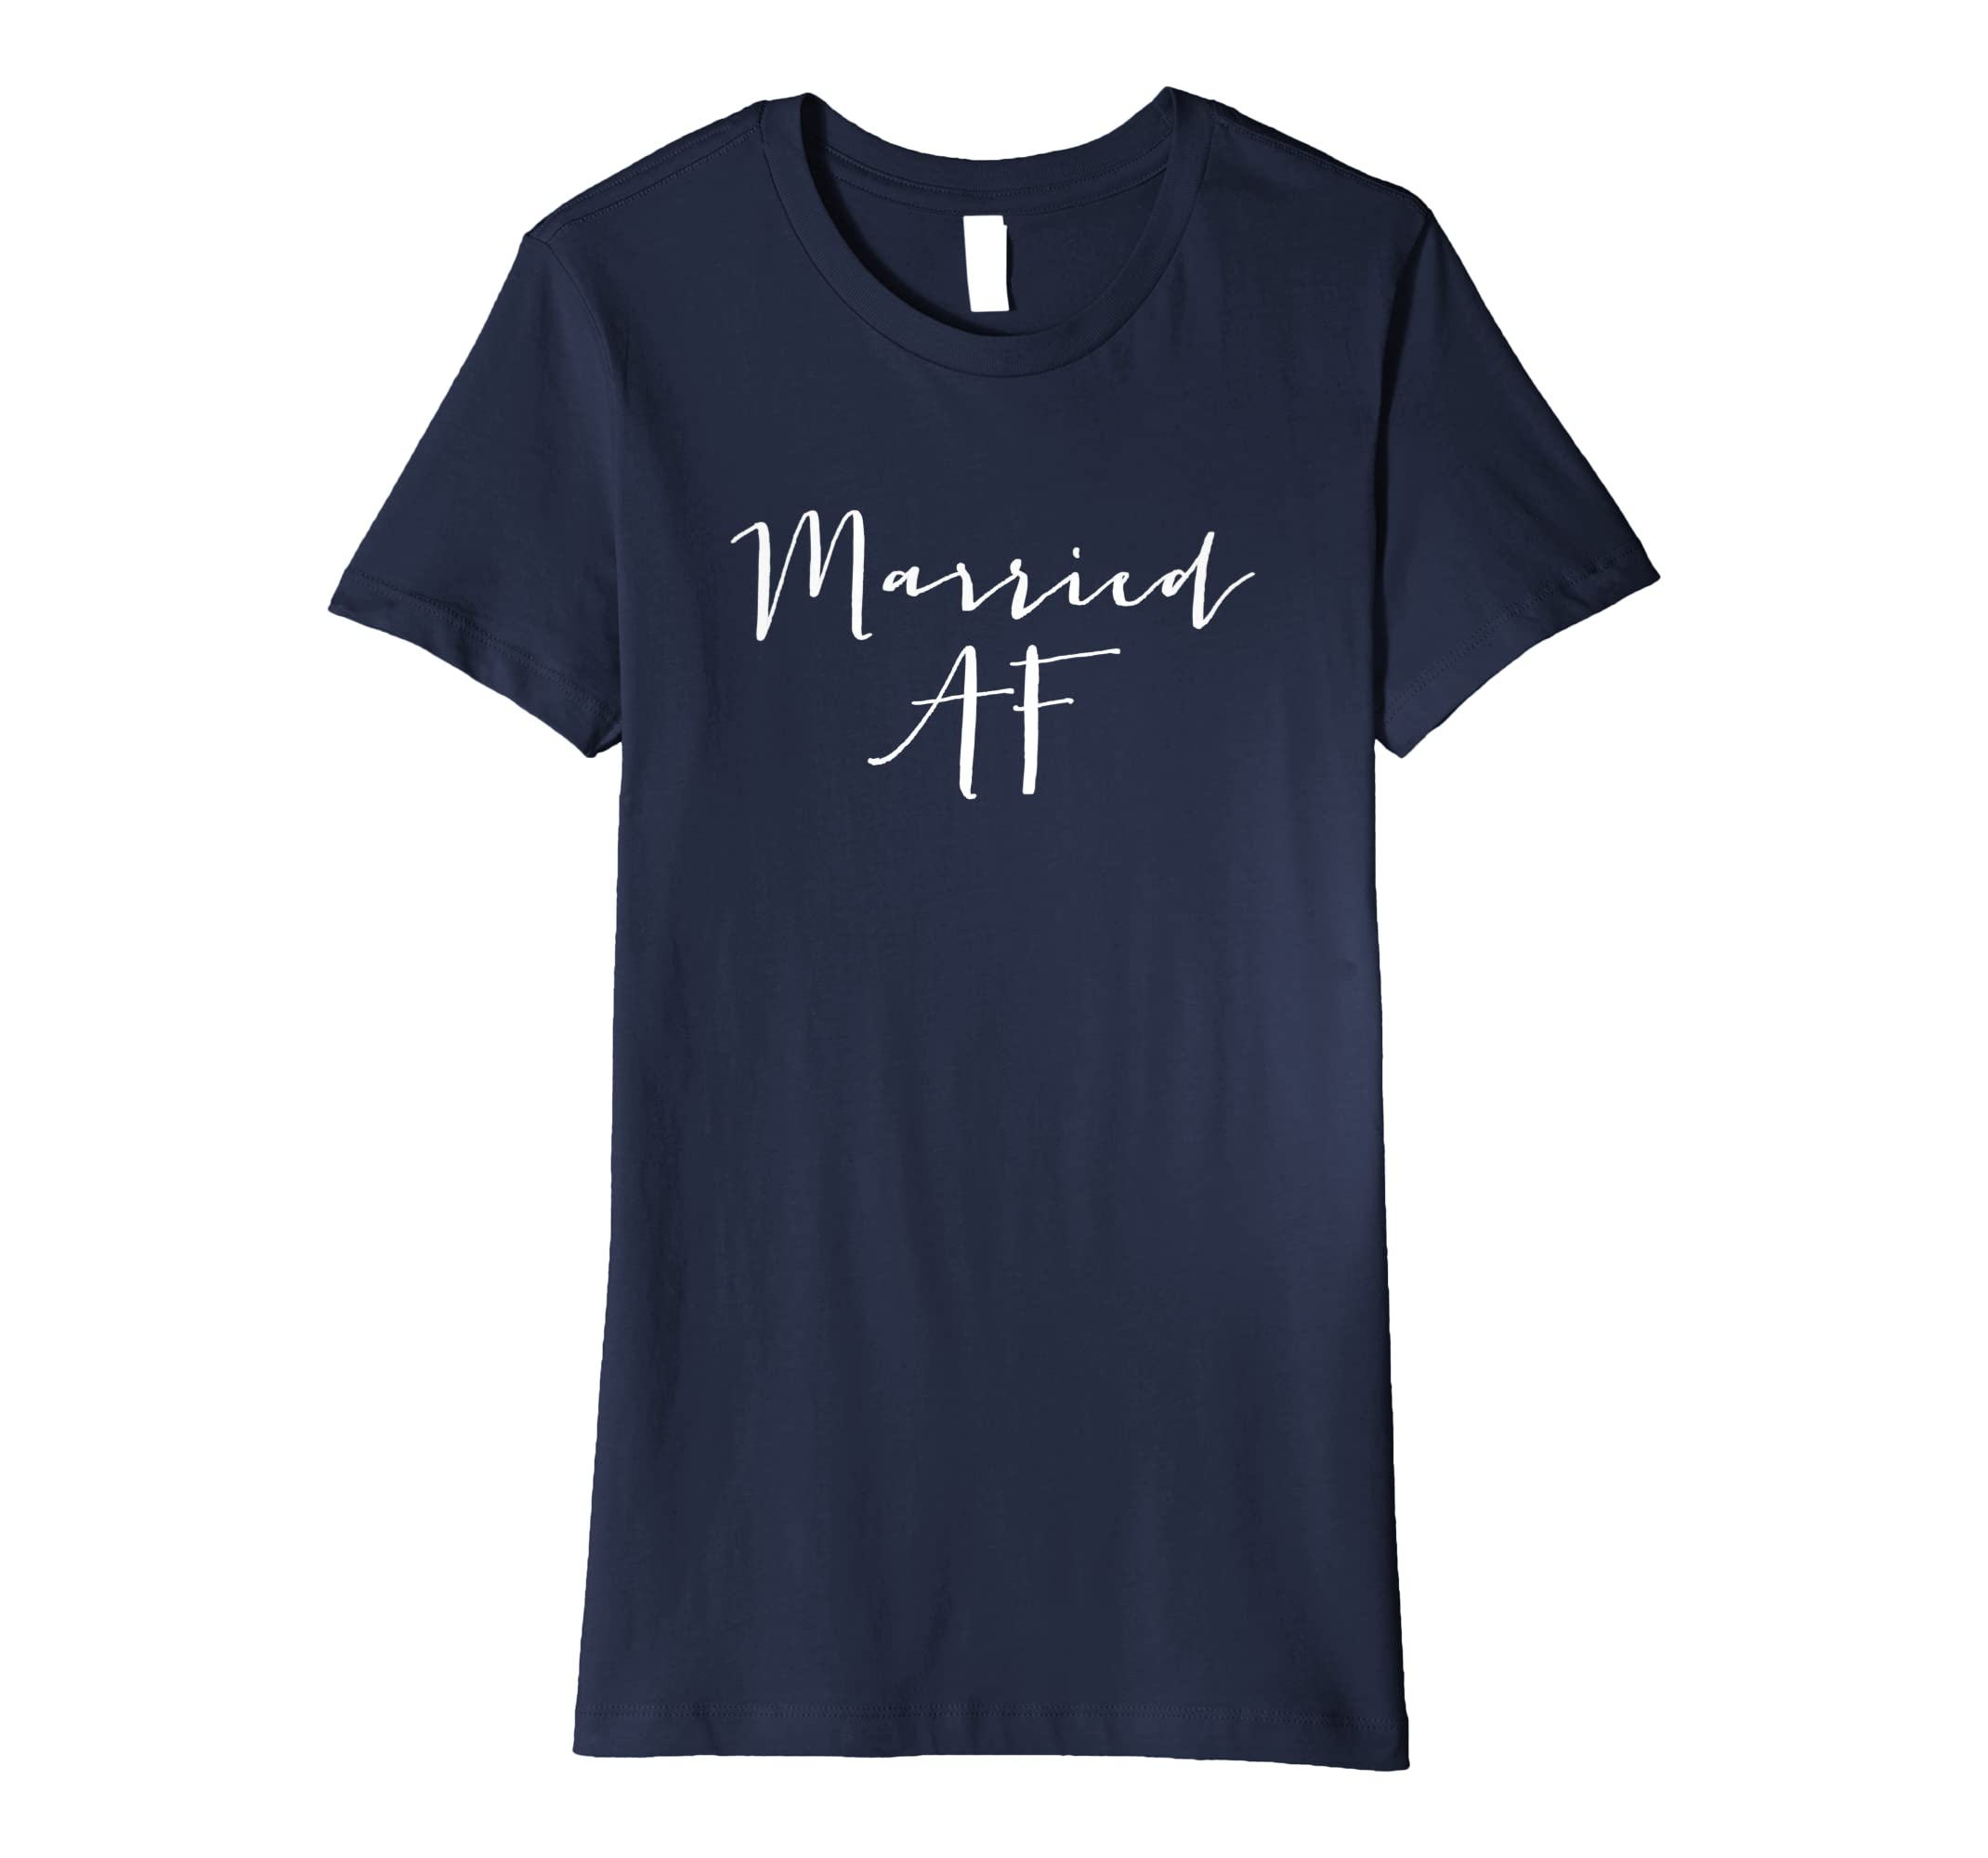 a7c7311ae86a Amazon.com  Women s Married AF Shirt T Tee Just Married Couples Tshirt   Clothing